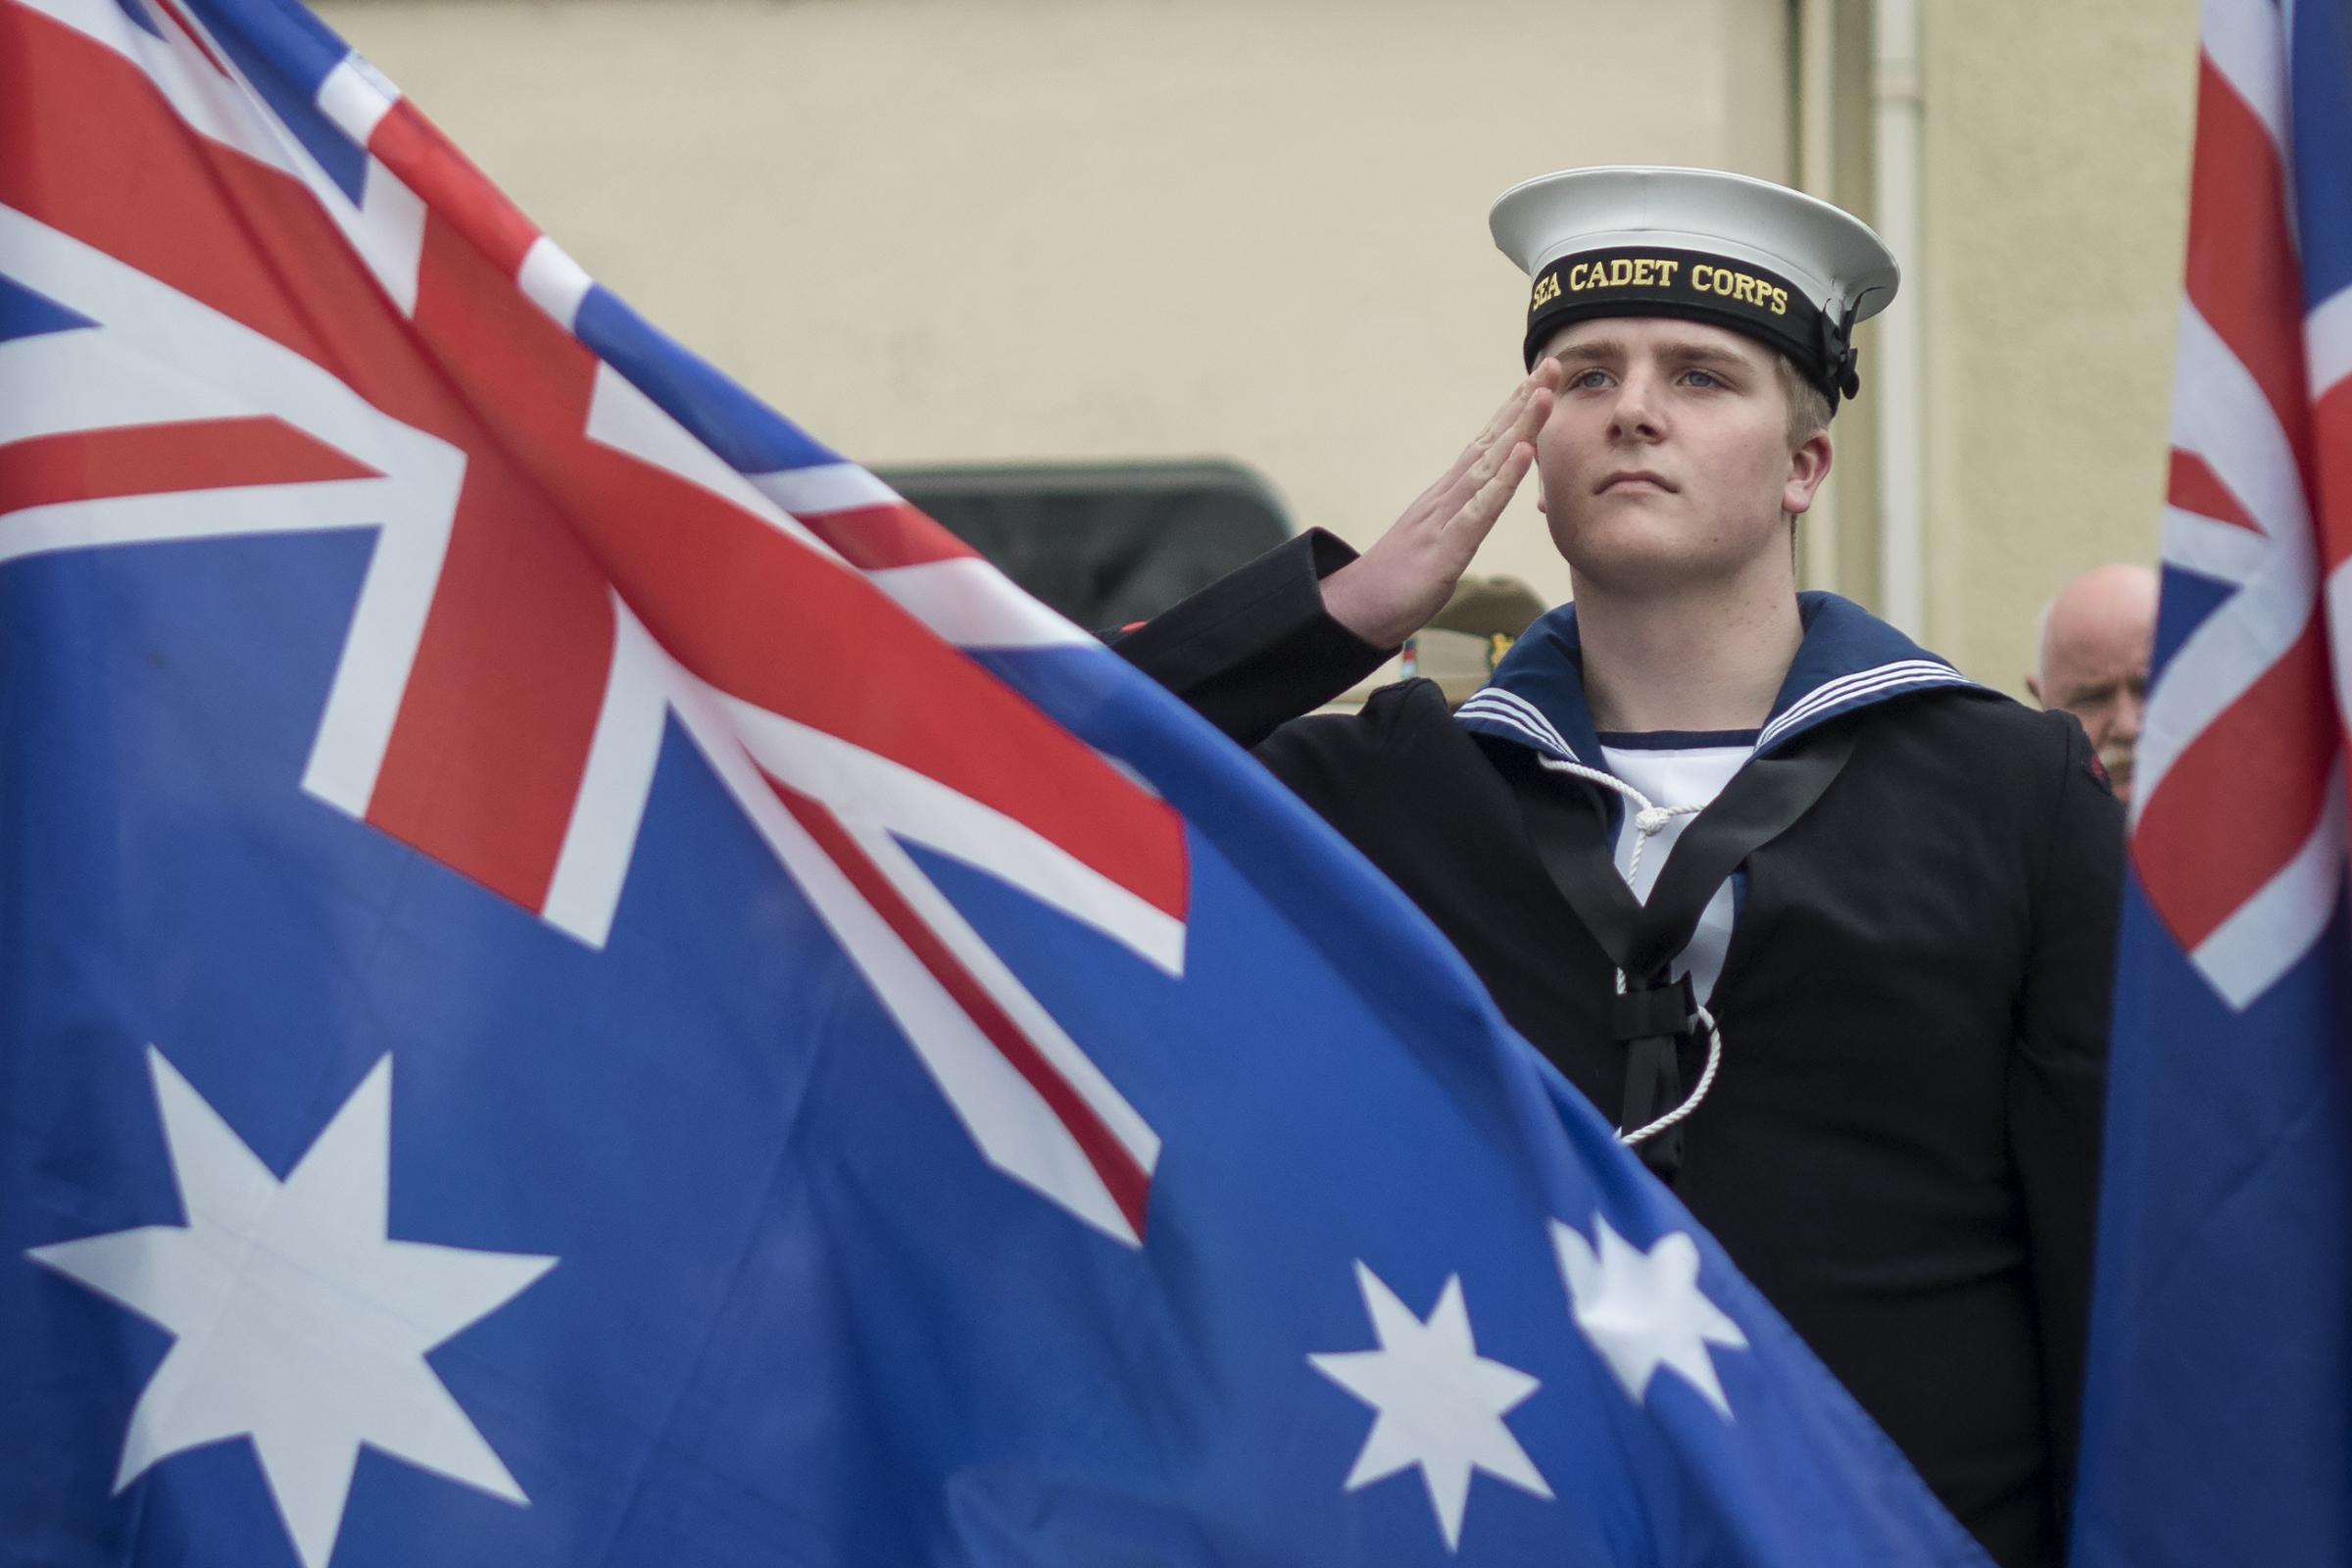 A cadet salutes after laying a wreath on Hamilton Terrace. PICTURE: Milford Mercury